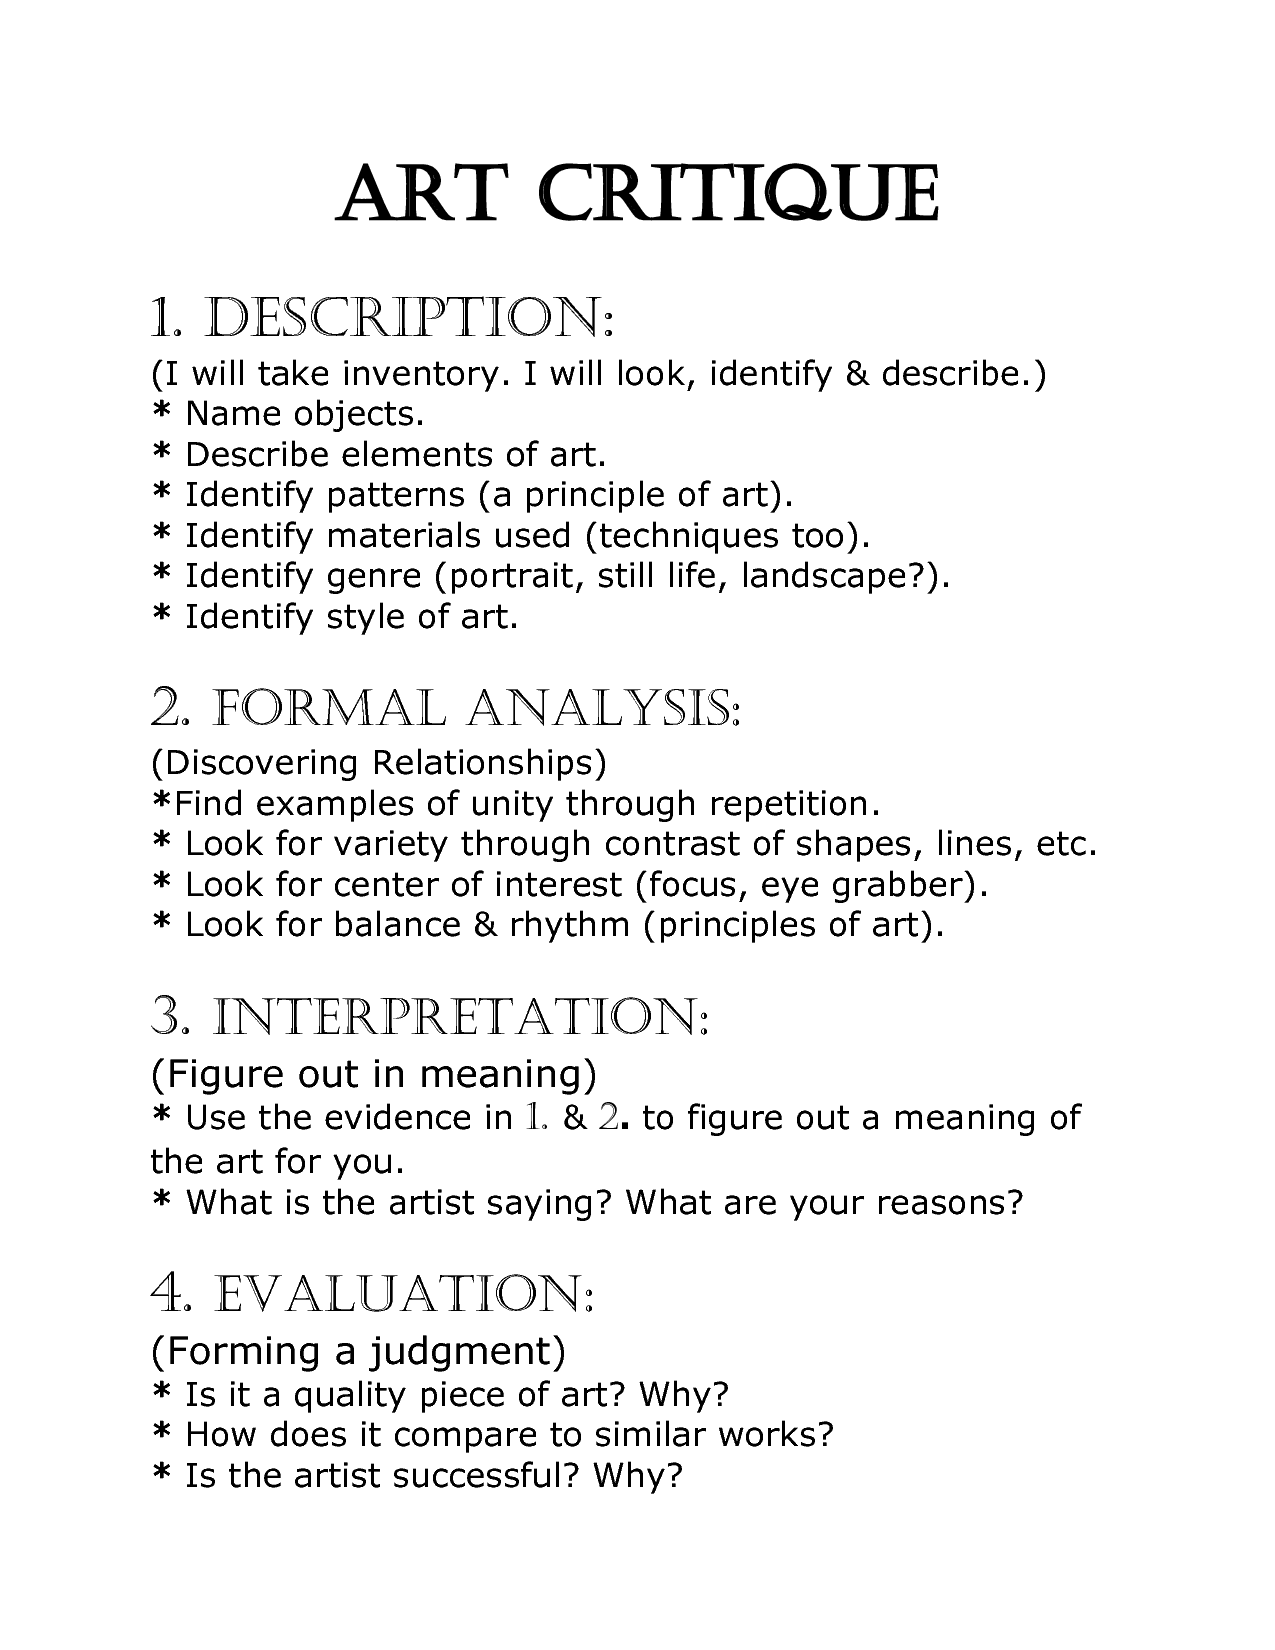 Worksheets Art Critique Worksheet pin by patty joseph on art pinterest worksheets student critique worksheet for teacher feedback